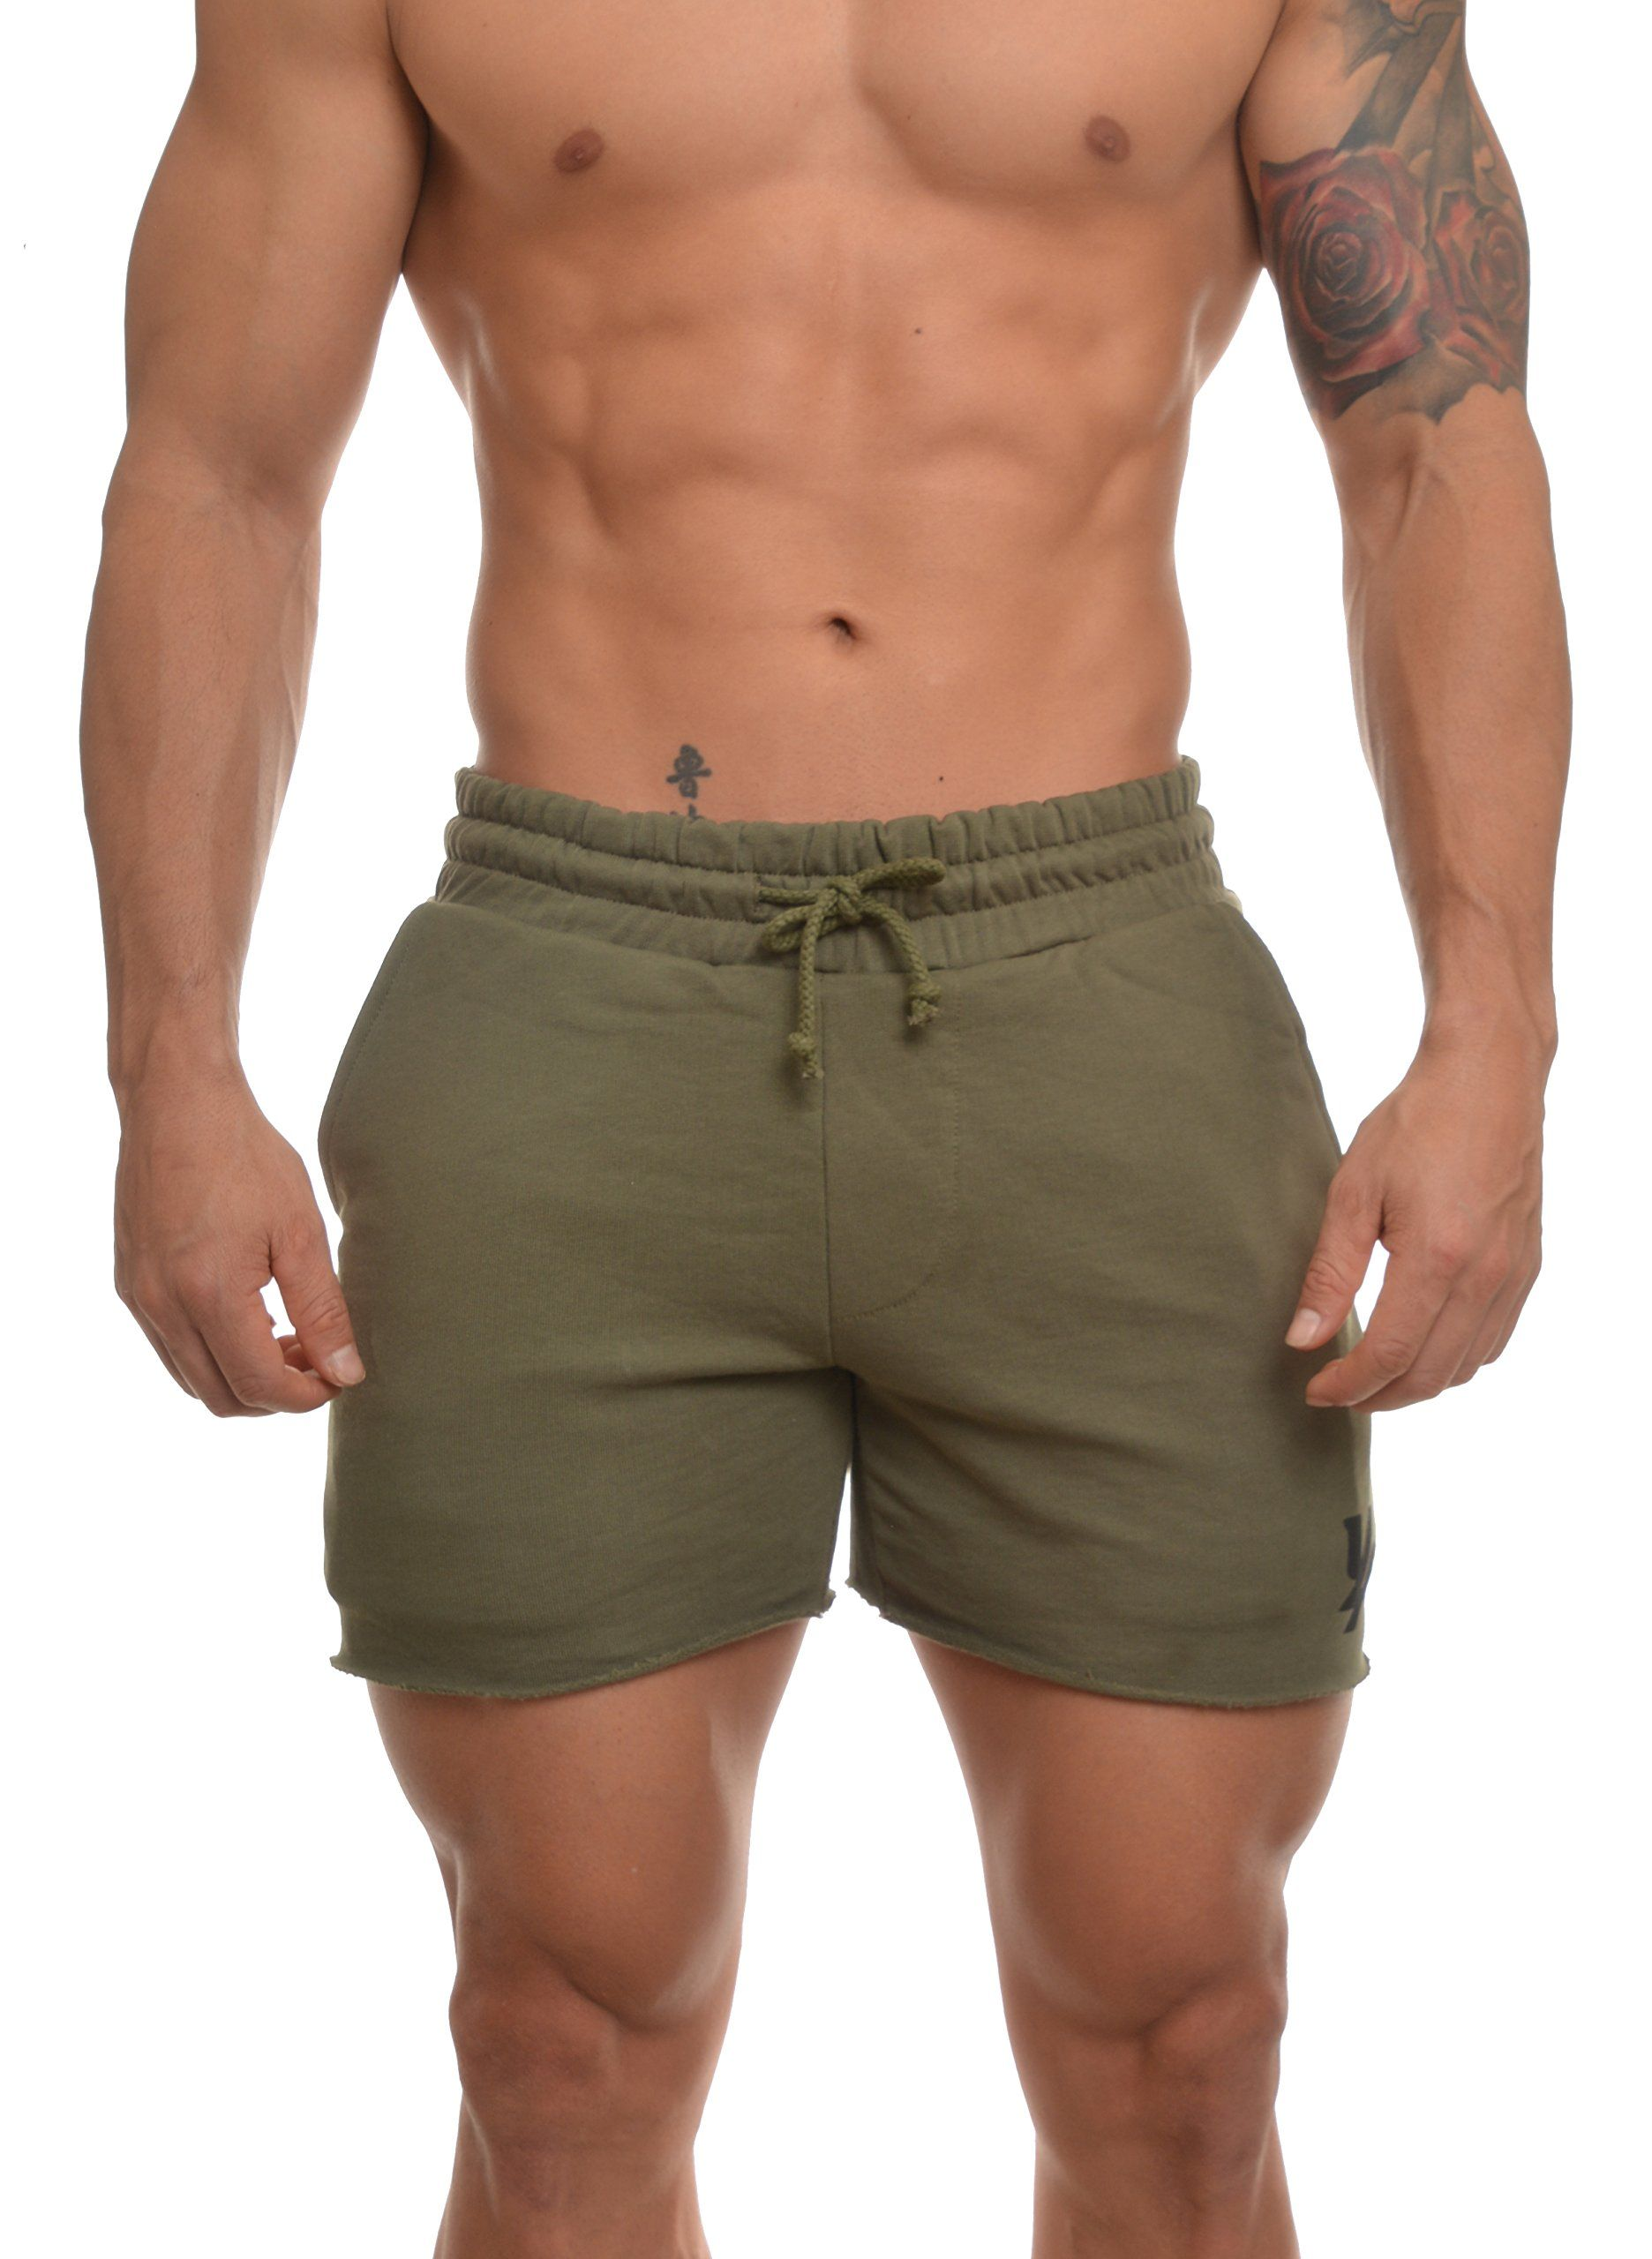 dc8f939a1e Youngla Men's French Terry Solid Bodybuilding Gym Running Workout Shorts  Olive Large. CREATED TO FIT